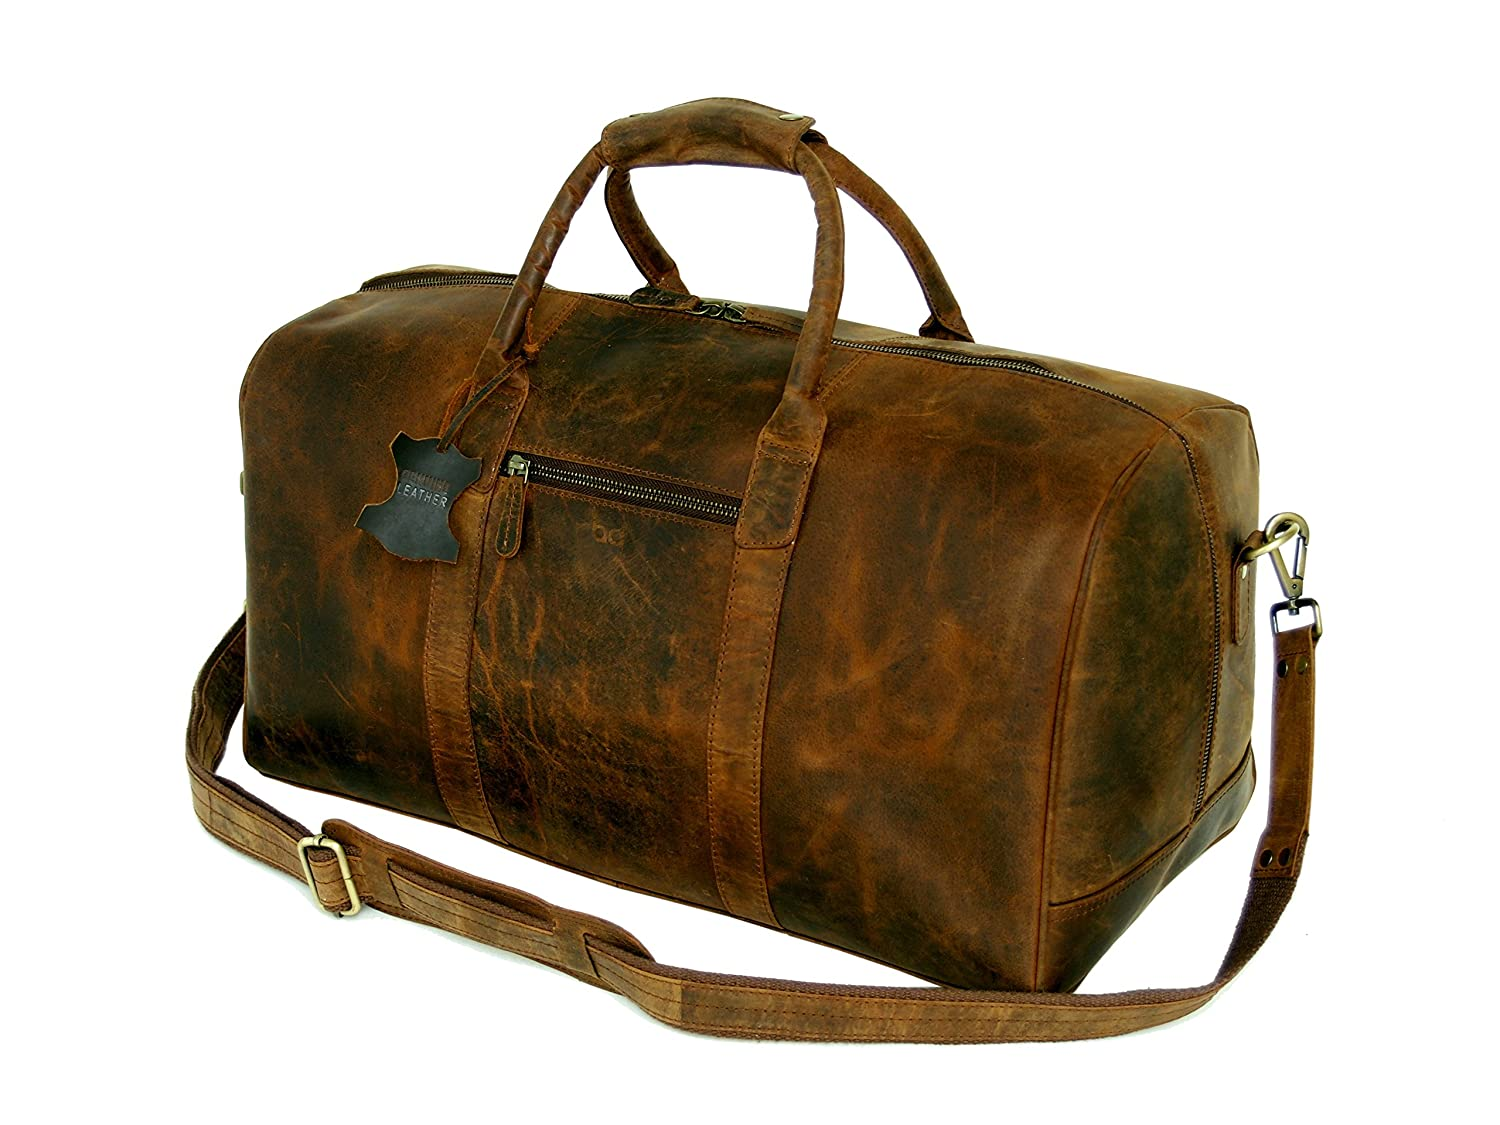 Basic Gear Full Grain Leather Weekender Travel Bag, Overnight Carry-on Luggage Leather Bag, Gym Duffel